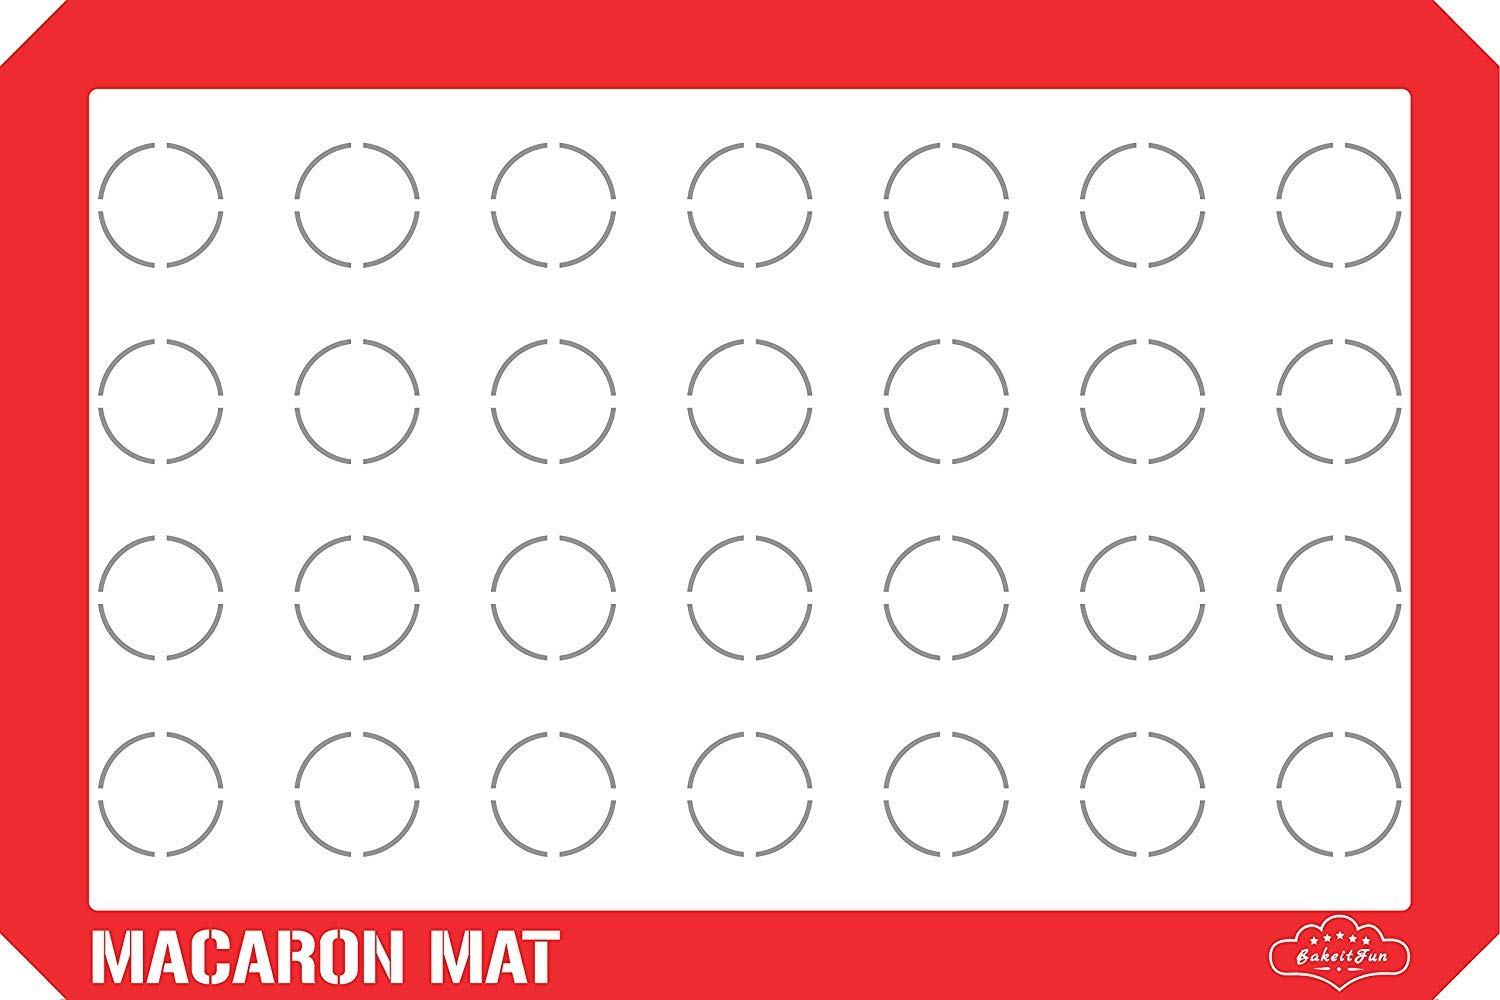 Baking Mat, Macaron Style, 16.5 x 11 5/8 inches, Red by BakeitFun